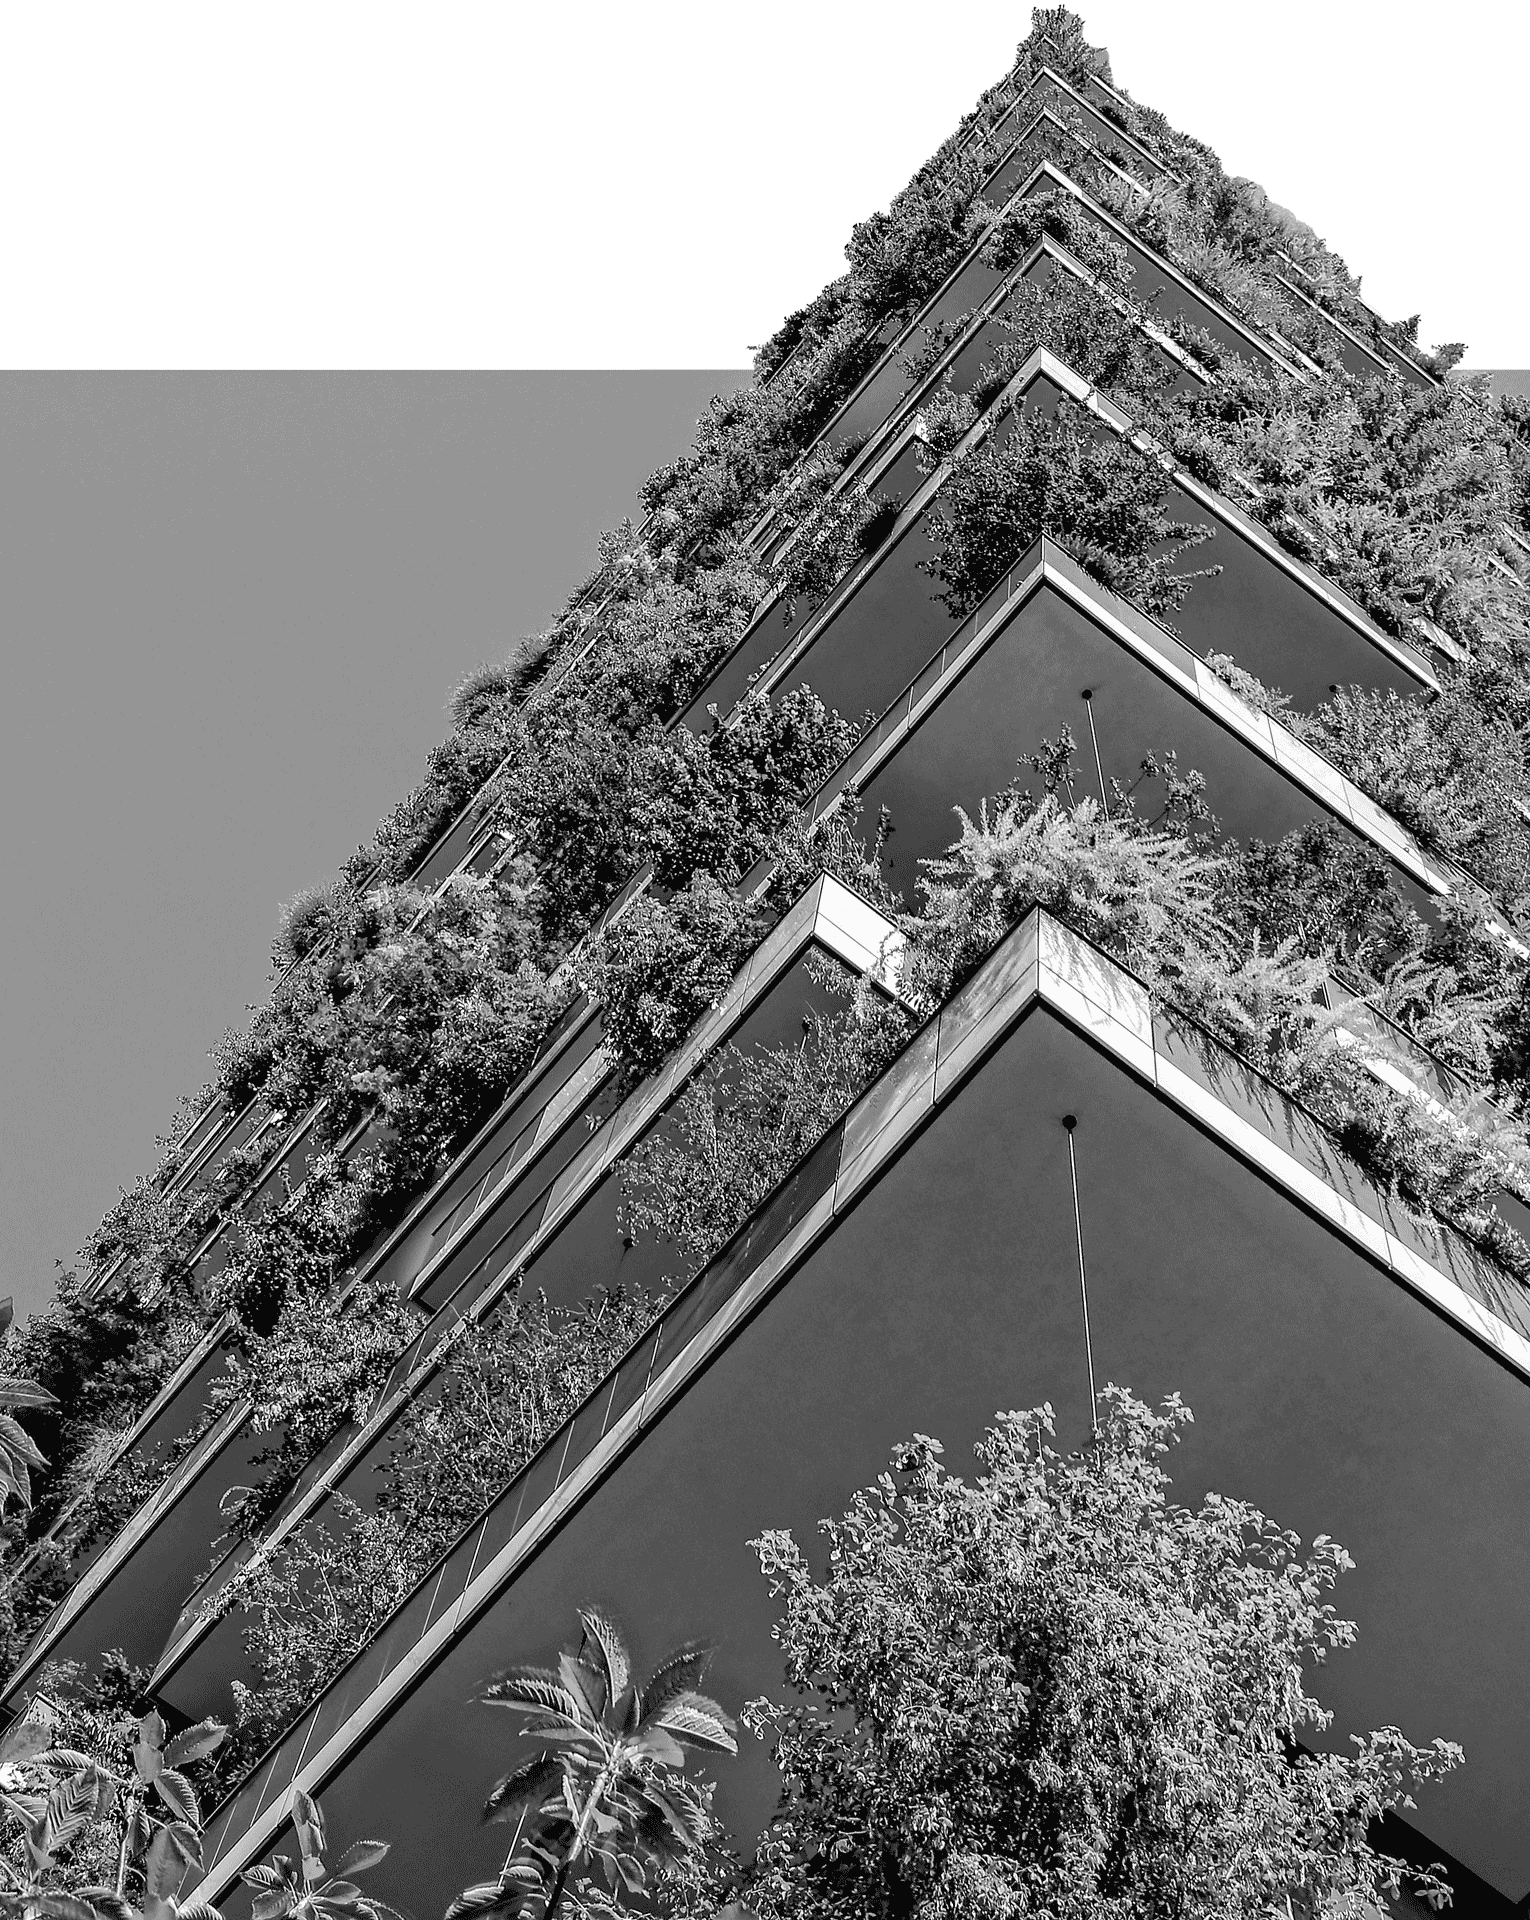 Abstract photo of a building filled with plants.